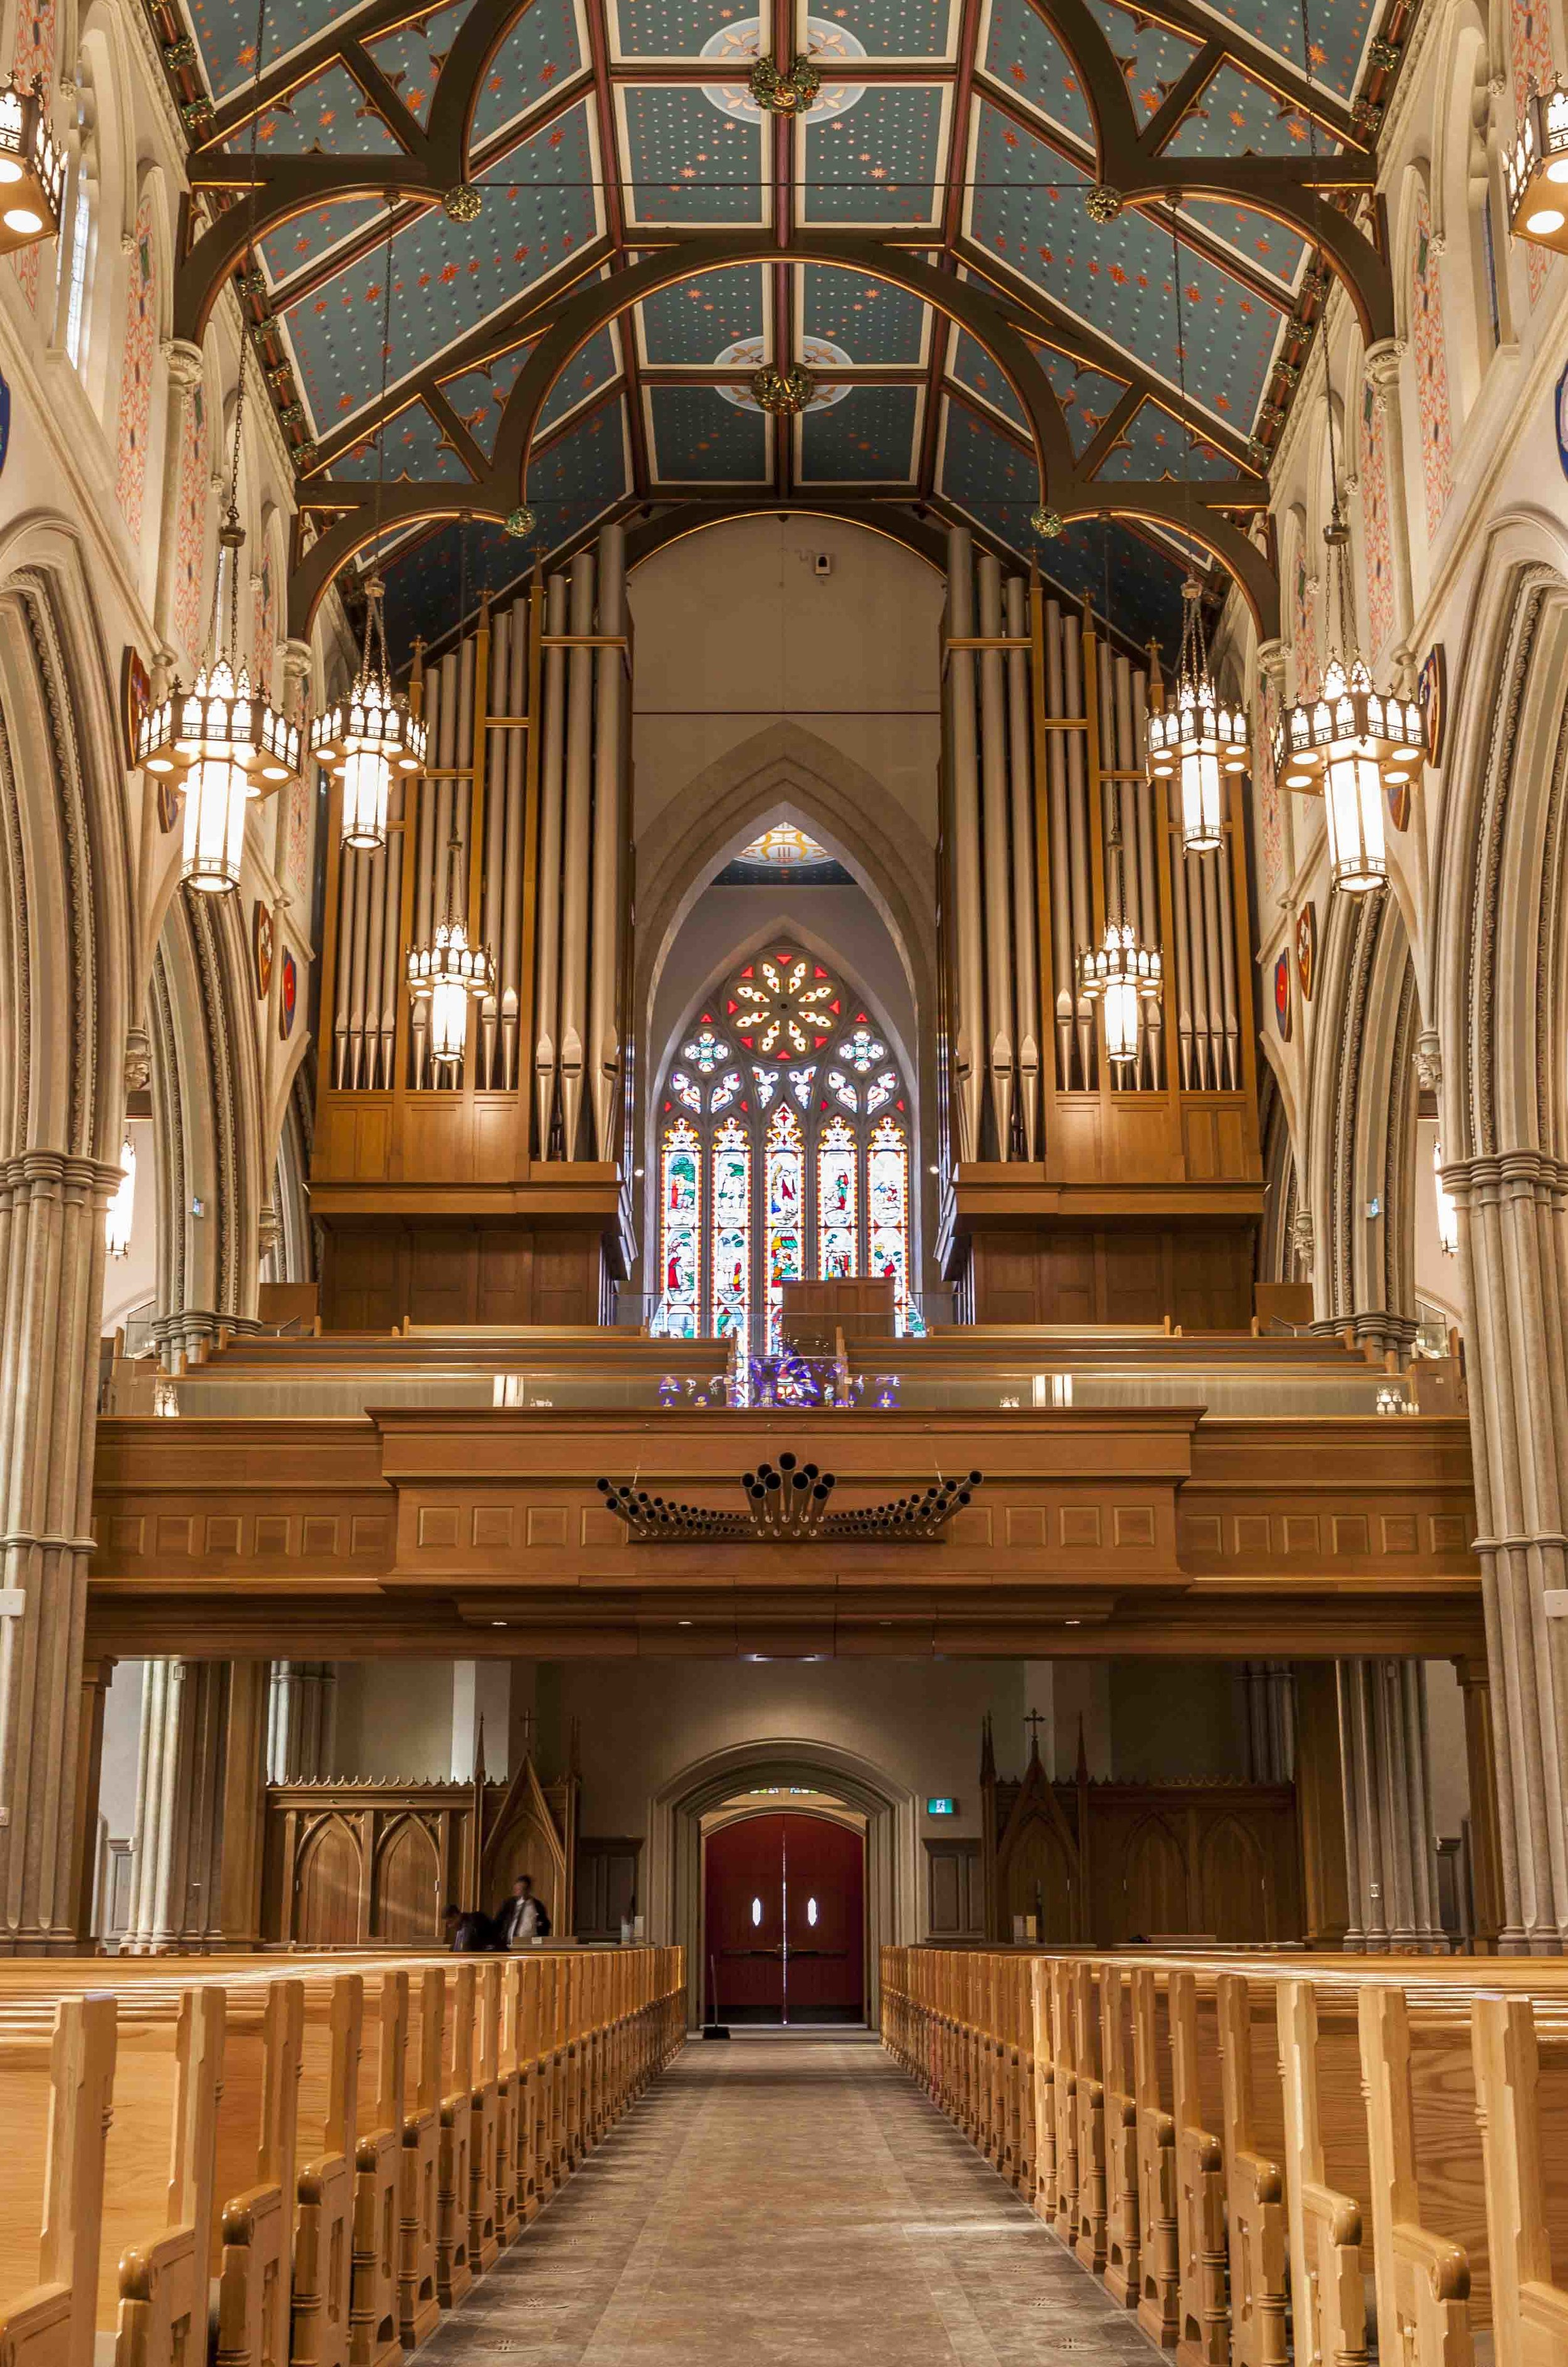 The outstanding Casavant pipe organ can be played from the Phoenix console in the chancel with the push of a button - 5 seconds transfer time.